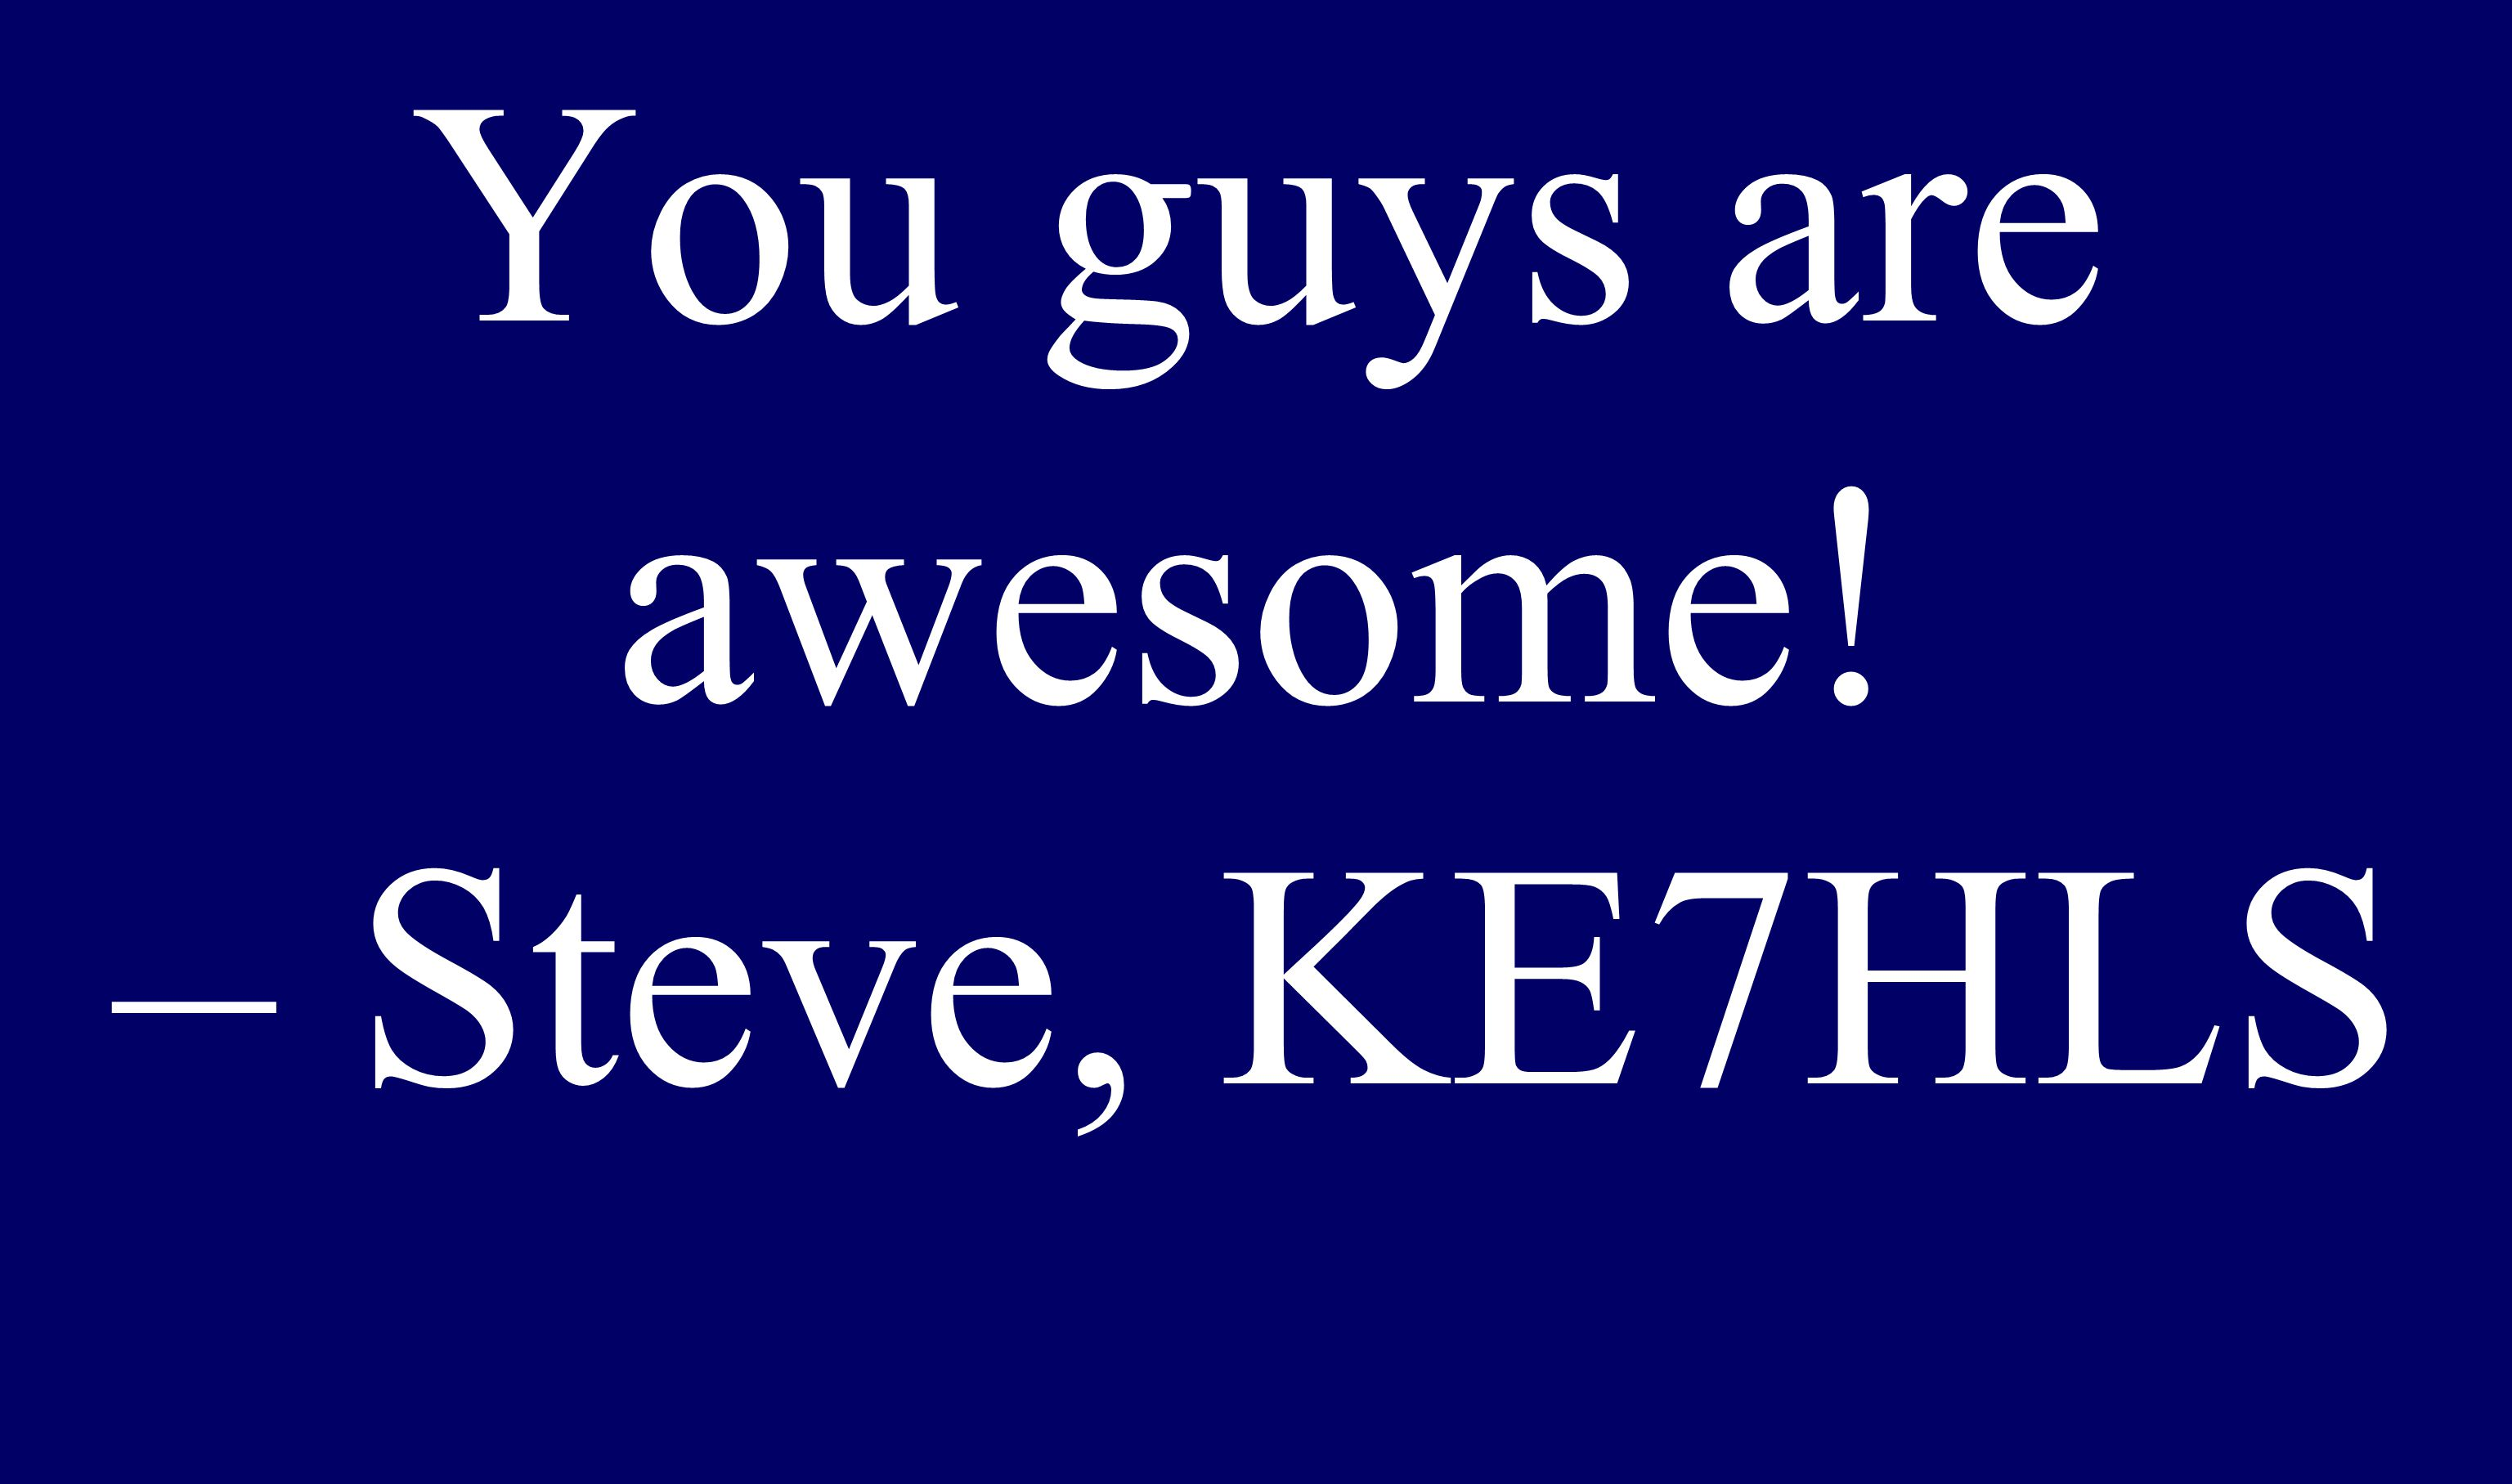 Scored 100% You guys are awesome! – Steve, KE7HLS